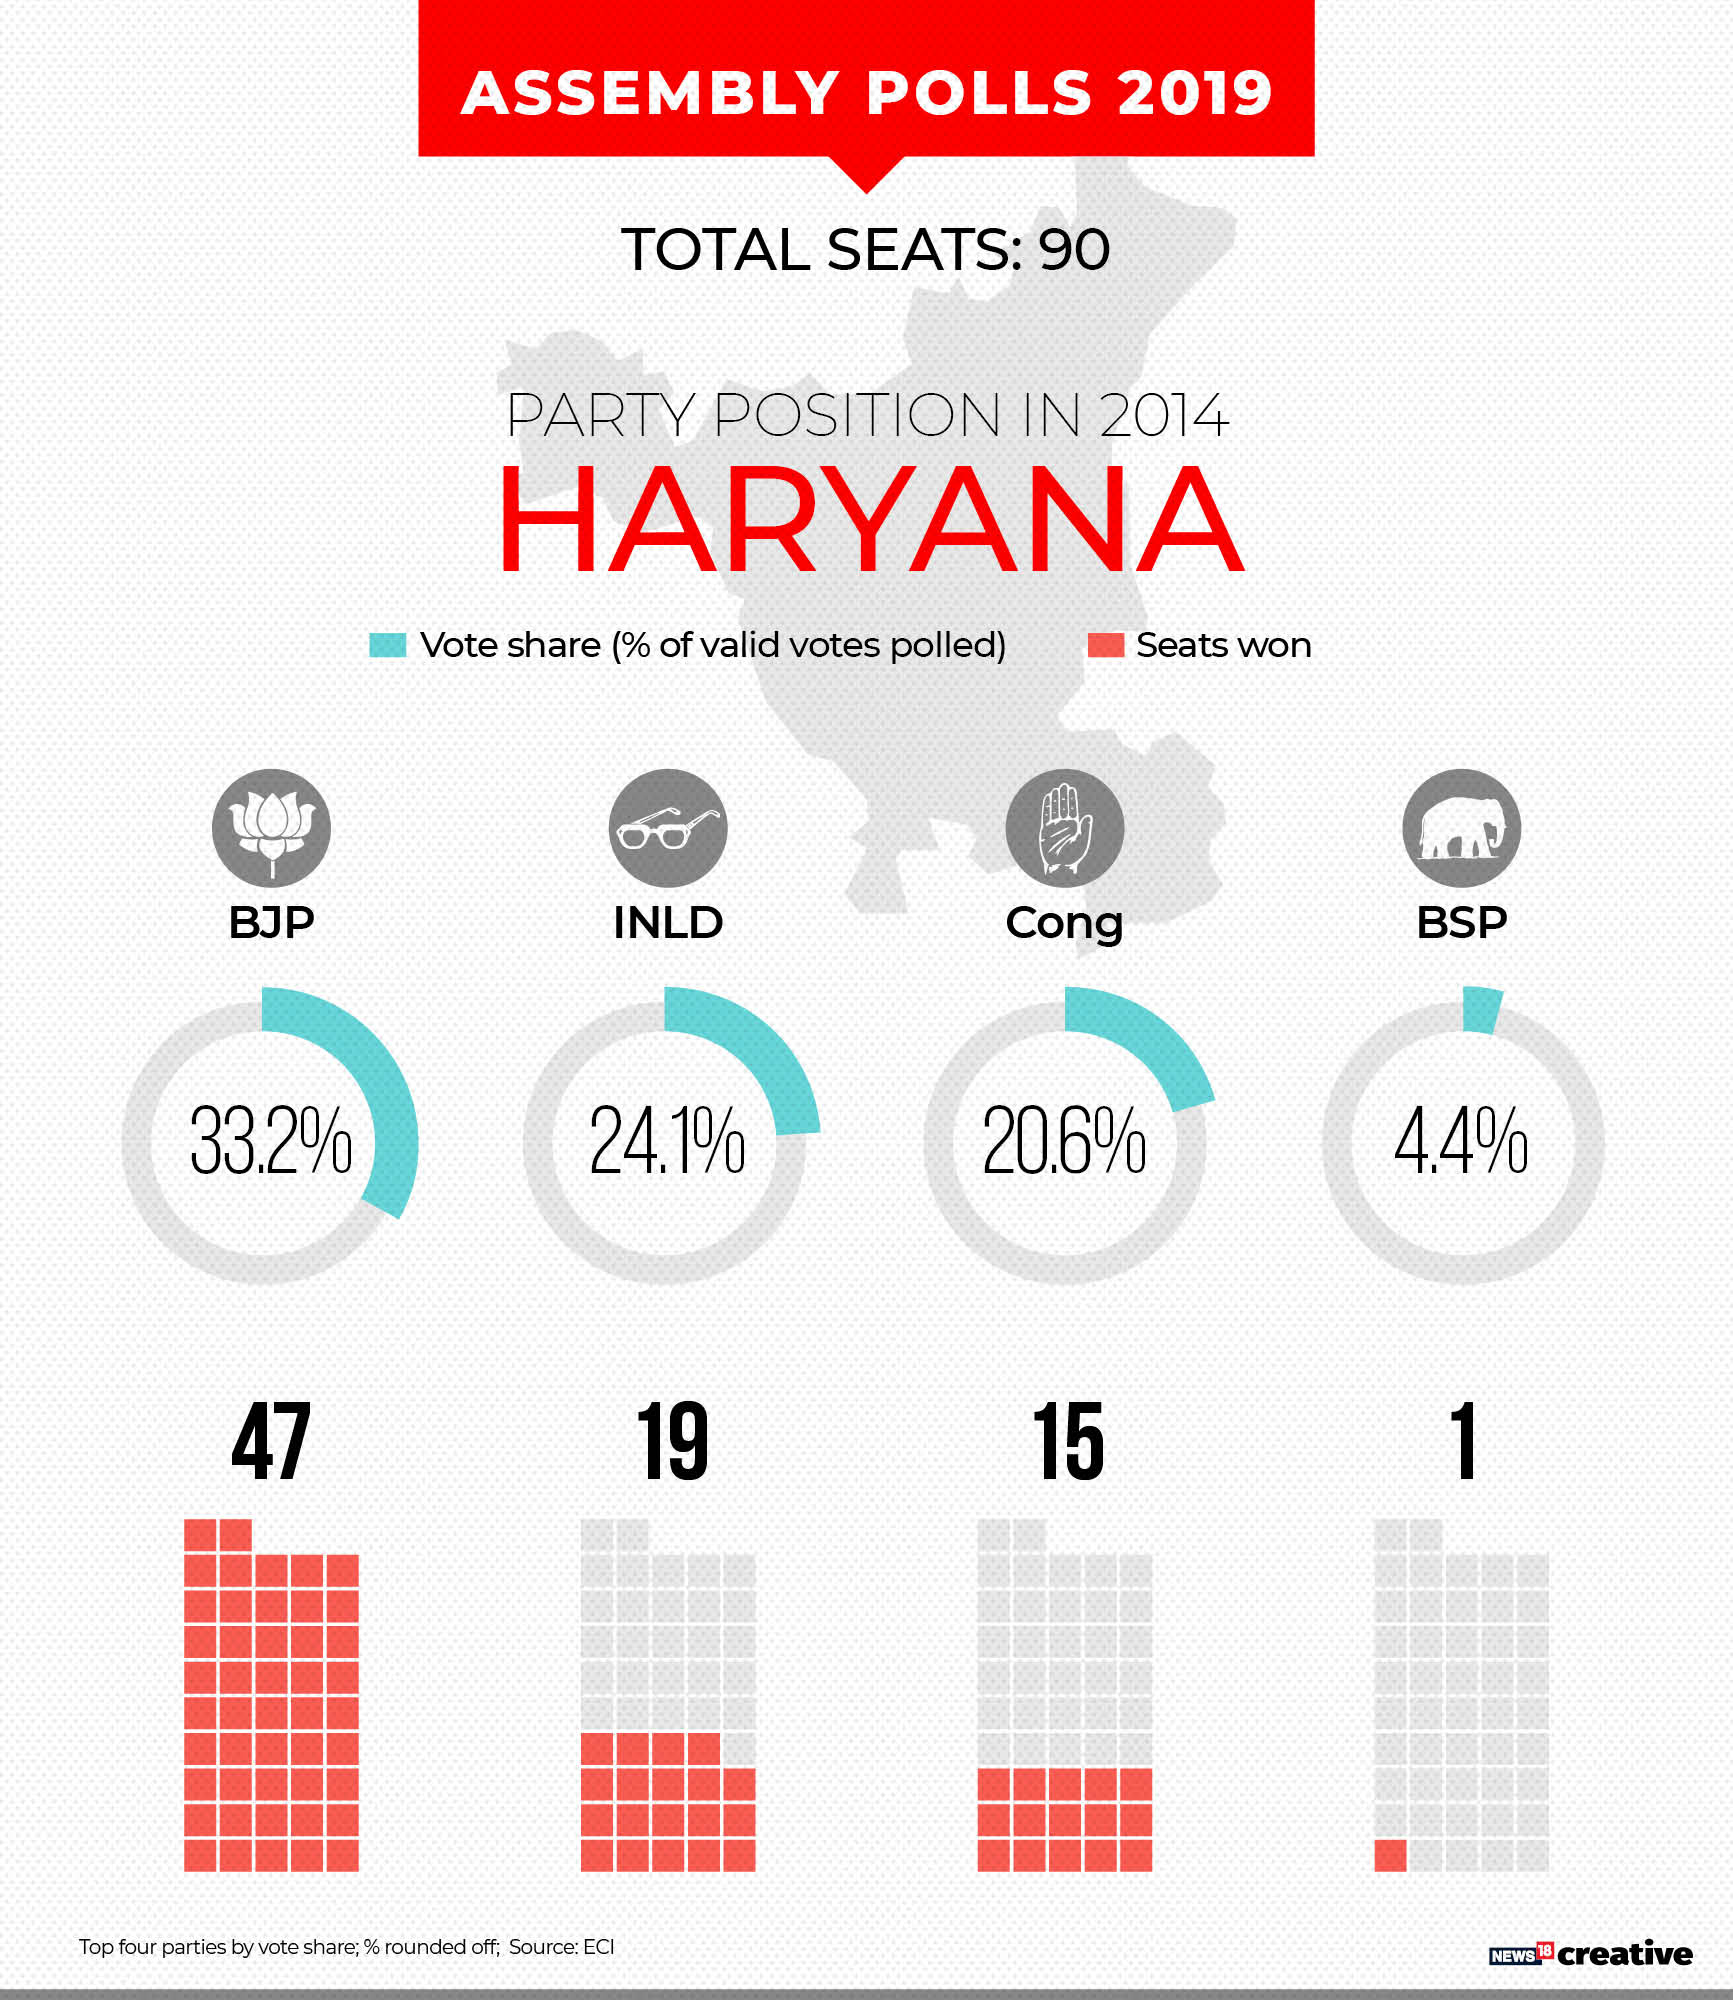 A snapshot of 2014 Haryana Assembly elections## A snapshot of 2014 Haryana Assembly elections